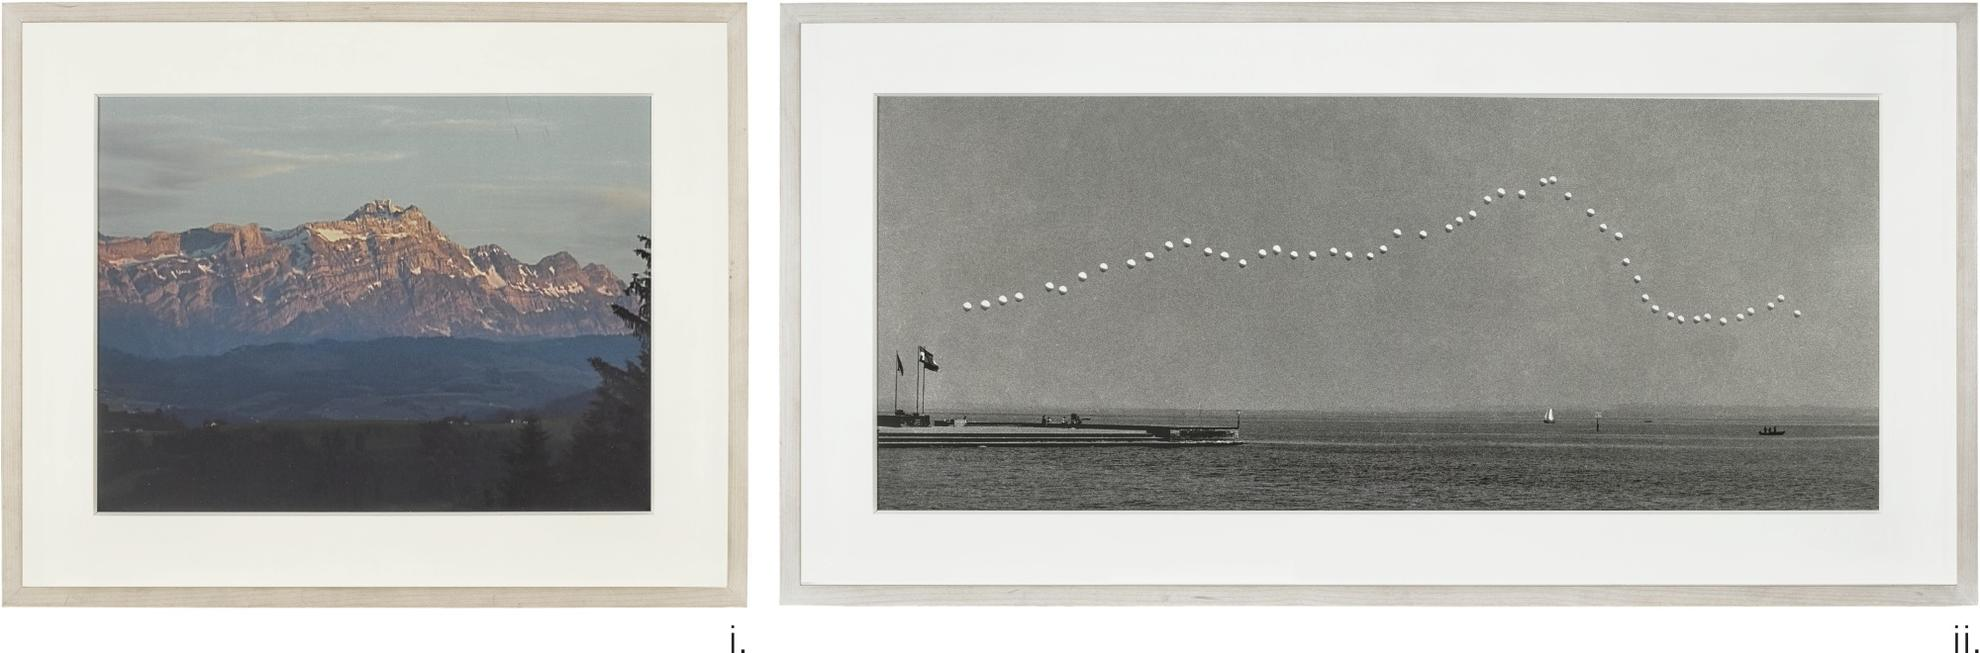 Roman Signer-Santis And Bodensee-1975